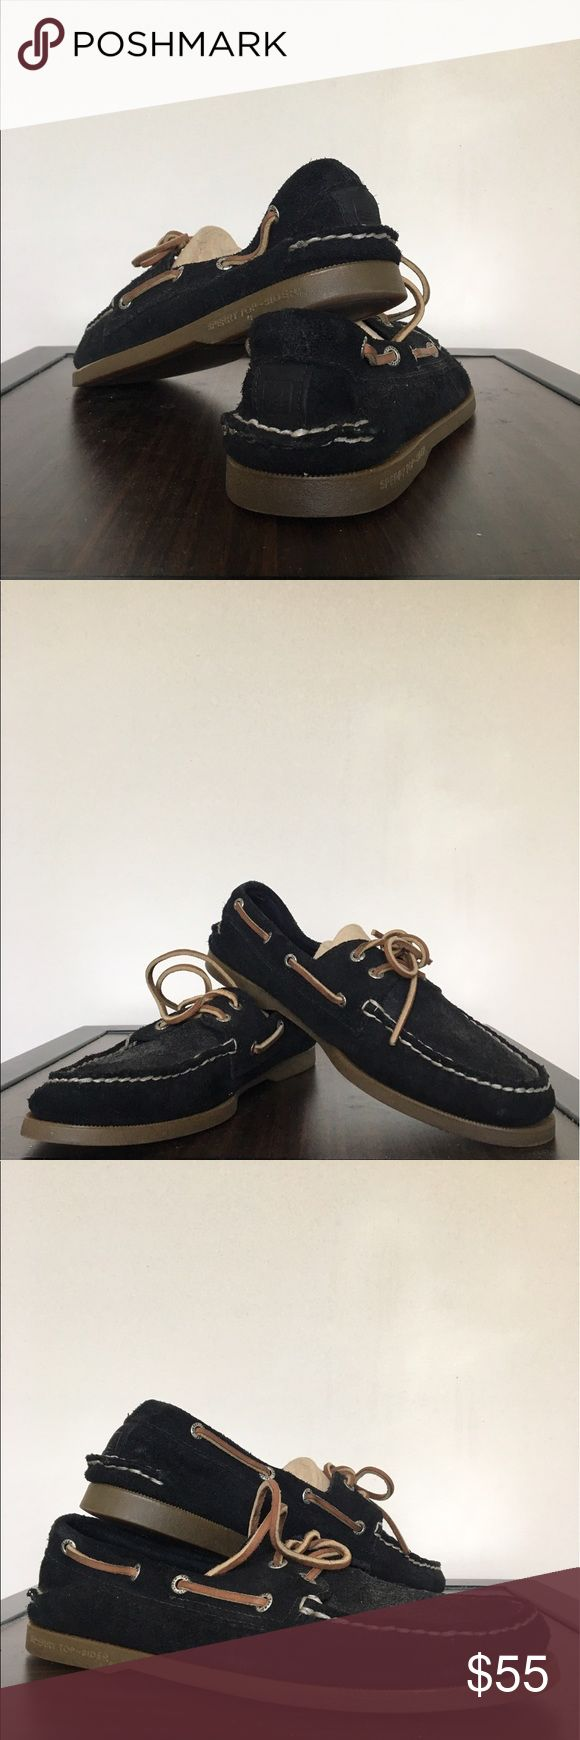 Sperry Topsider Men's Authentic Original Boat Shoe Very comfortable, lightly worn, black boat shoes. They come with shoe trunks. Can be worn casually or dressed up with slacks. Mens 9 1/2 Sperry Top-Sider Shoes Boat Shoes